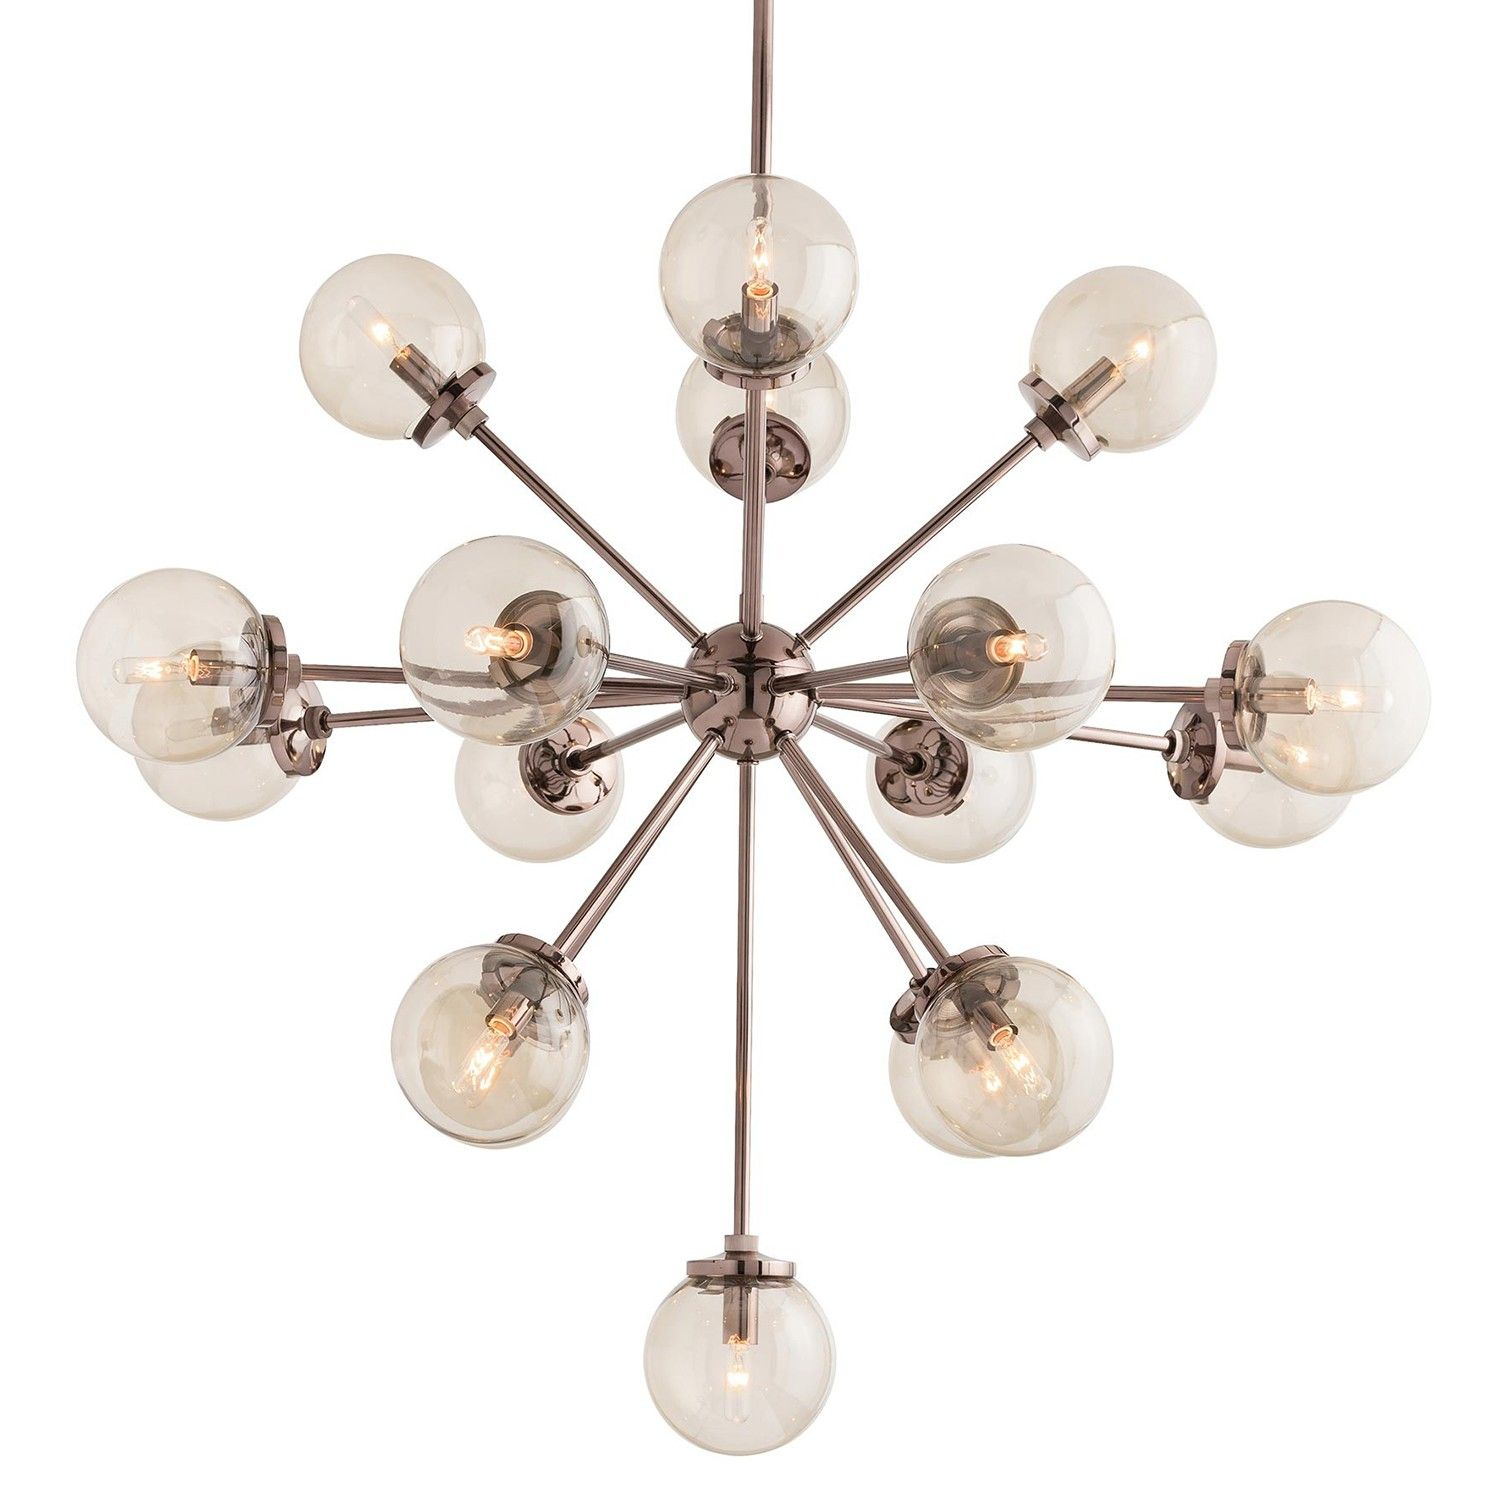 A new take on the globe chandelier the Henderson features 17